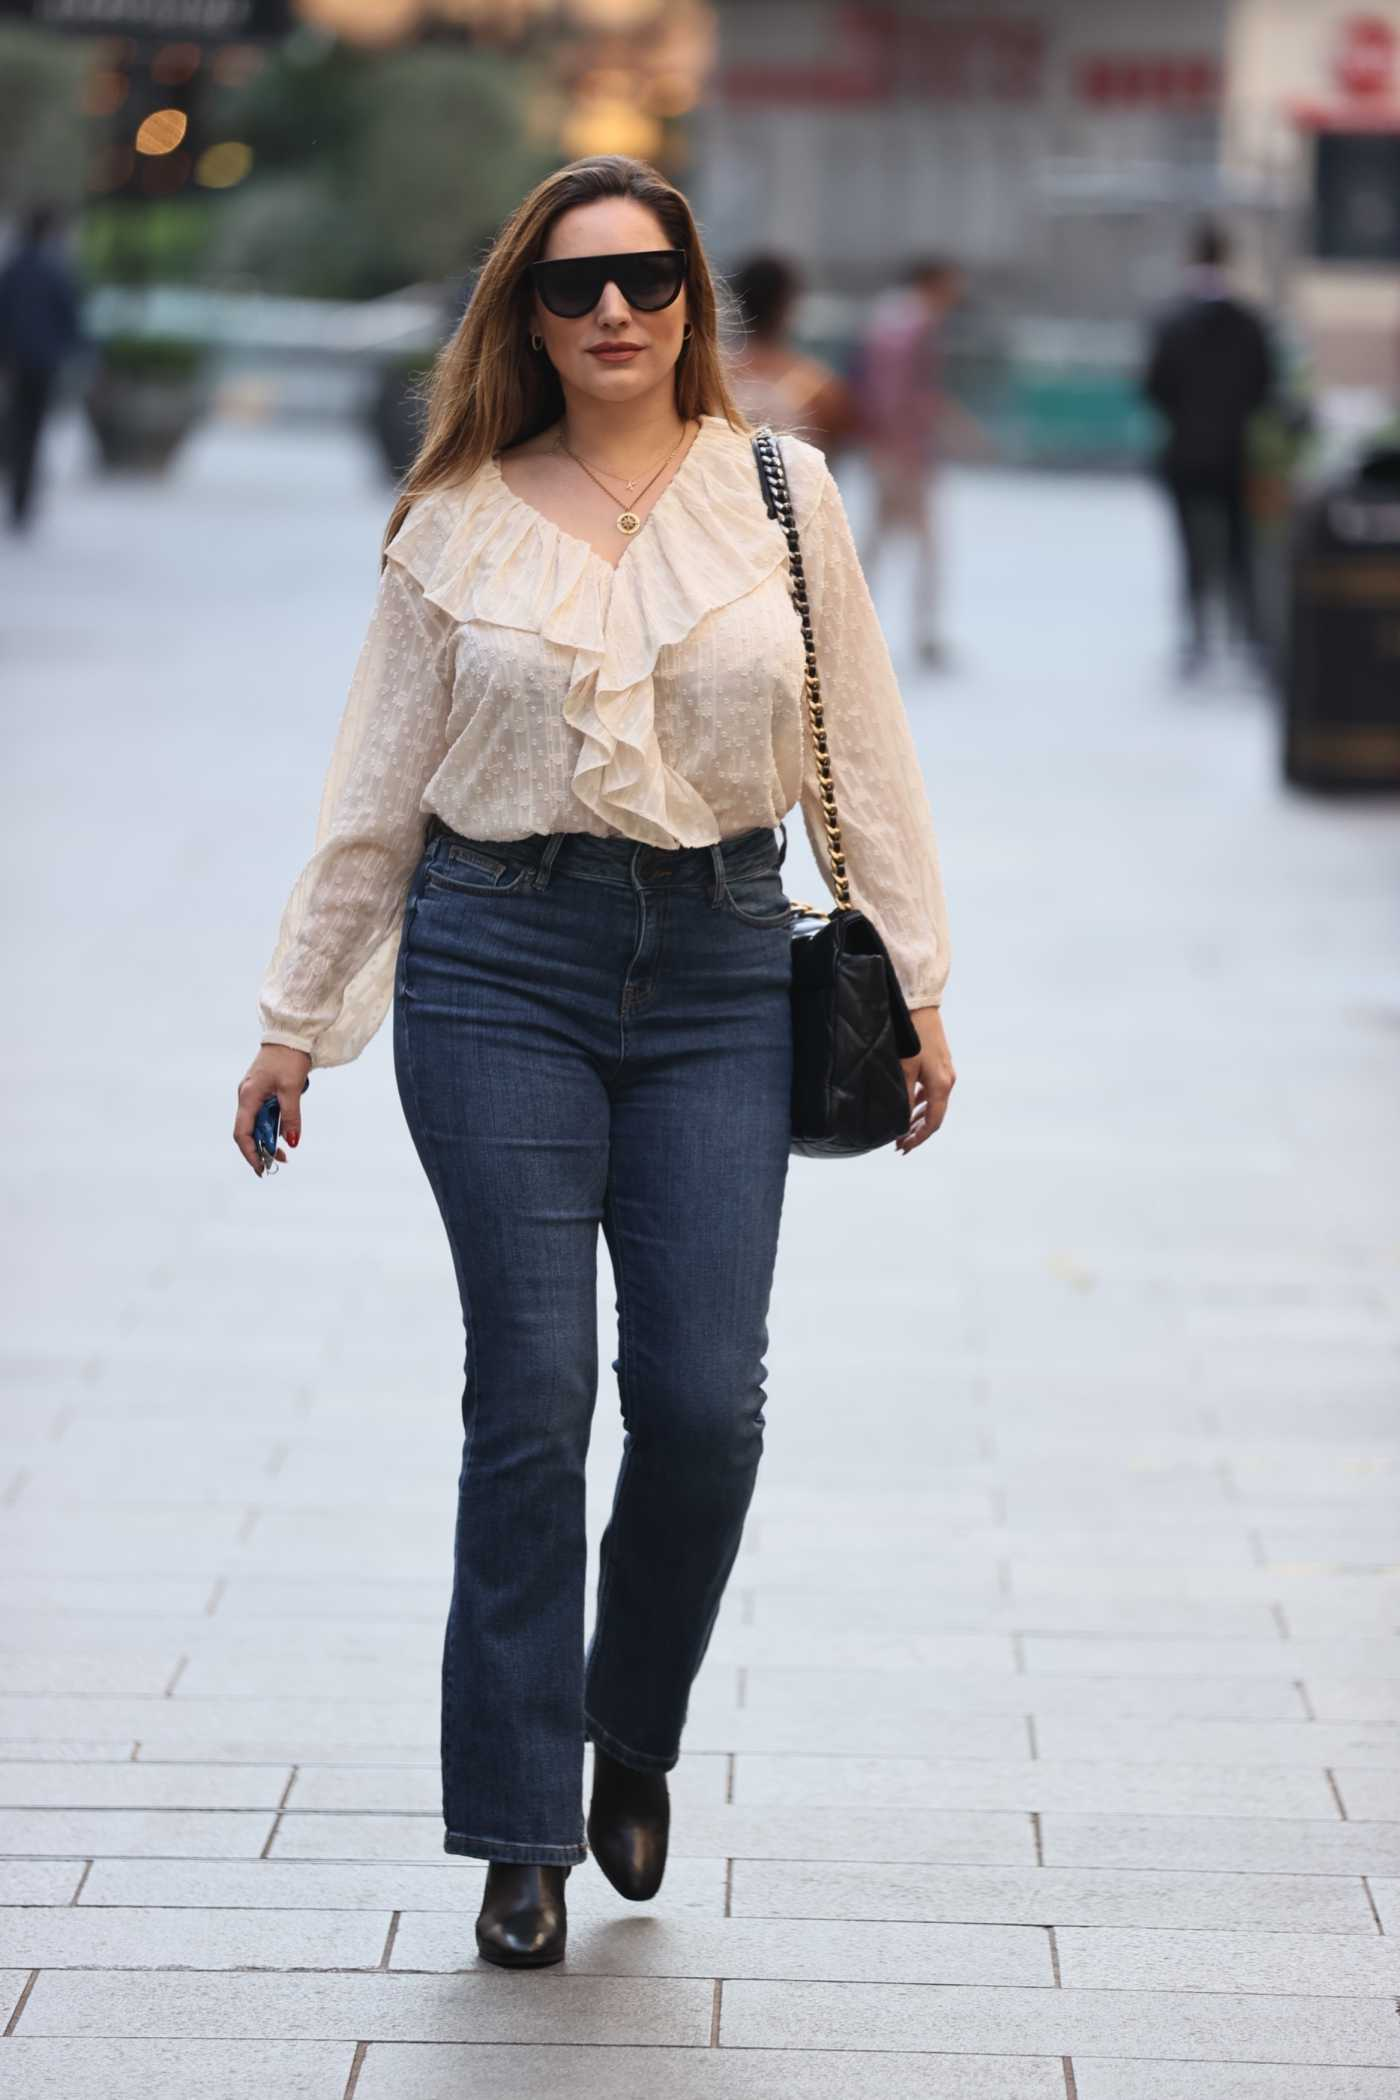 Kelly Brook in a Beige Blouse Was Seen Out in London 09/21/2020